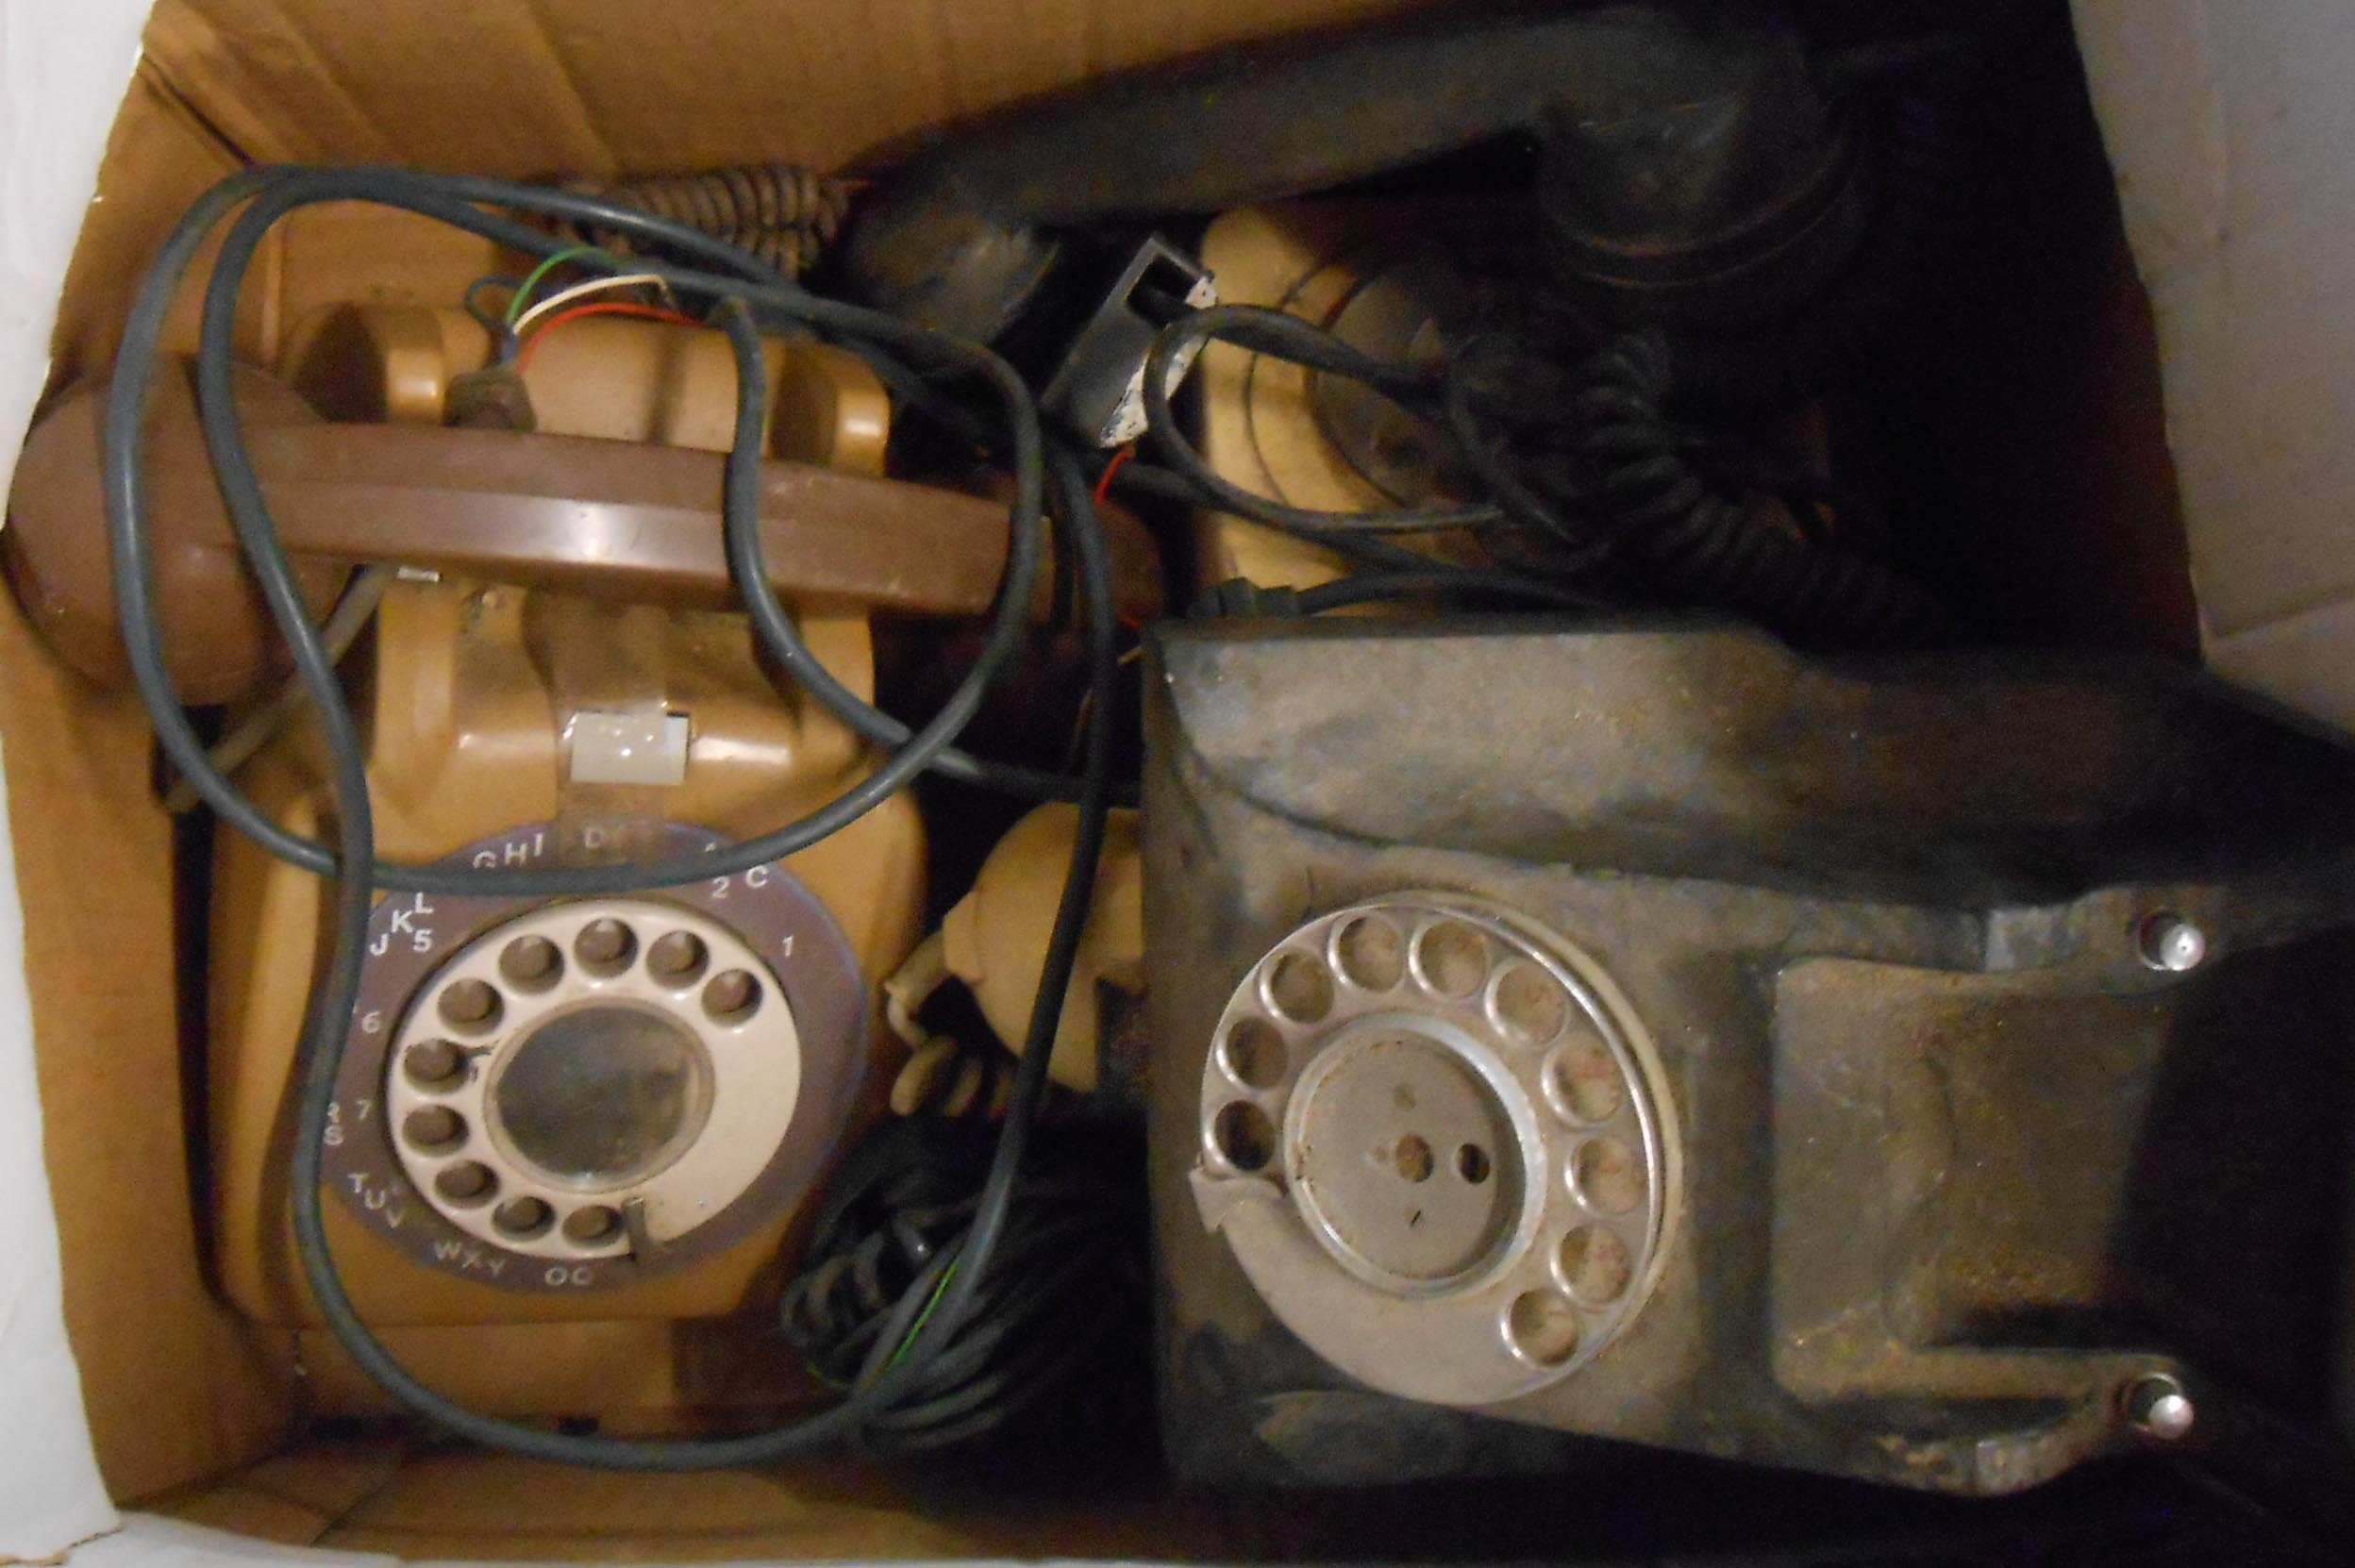 A box containing three vintage telephones